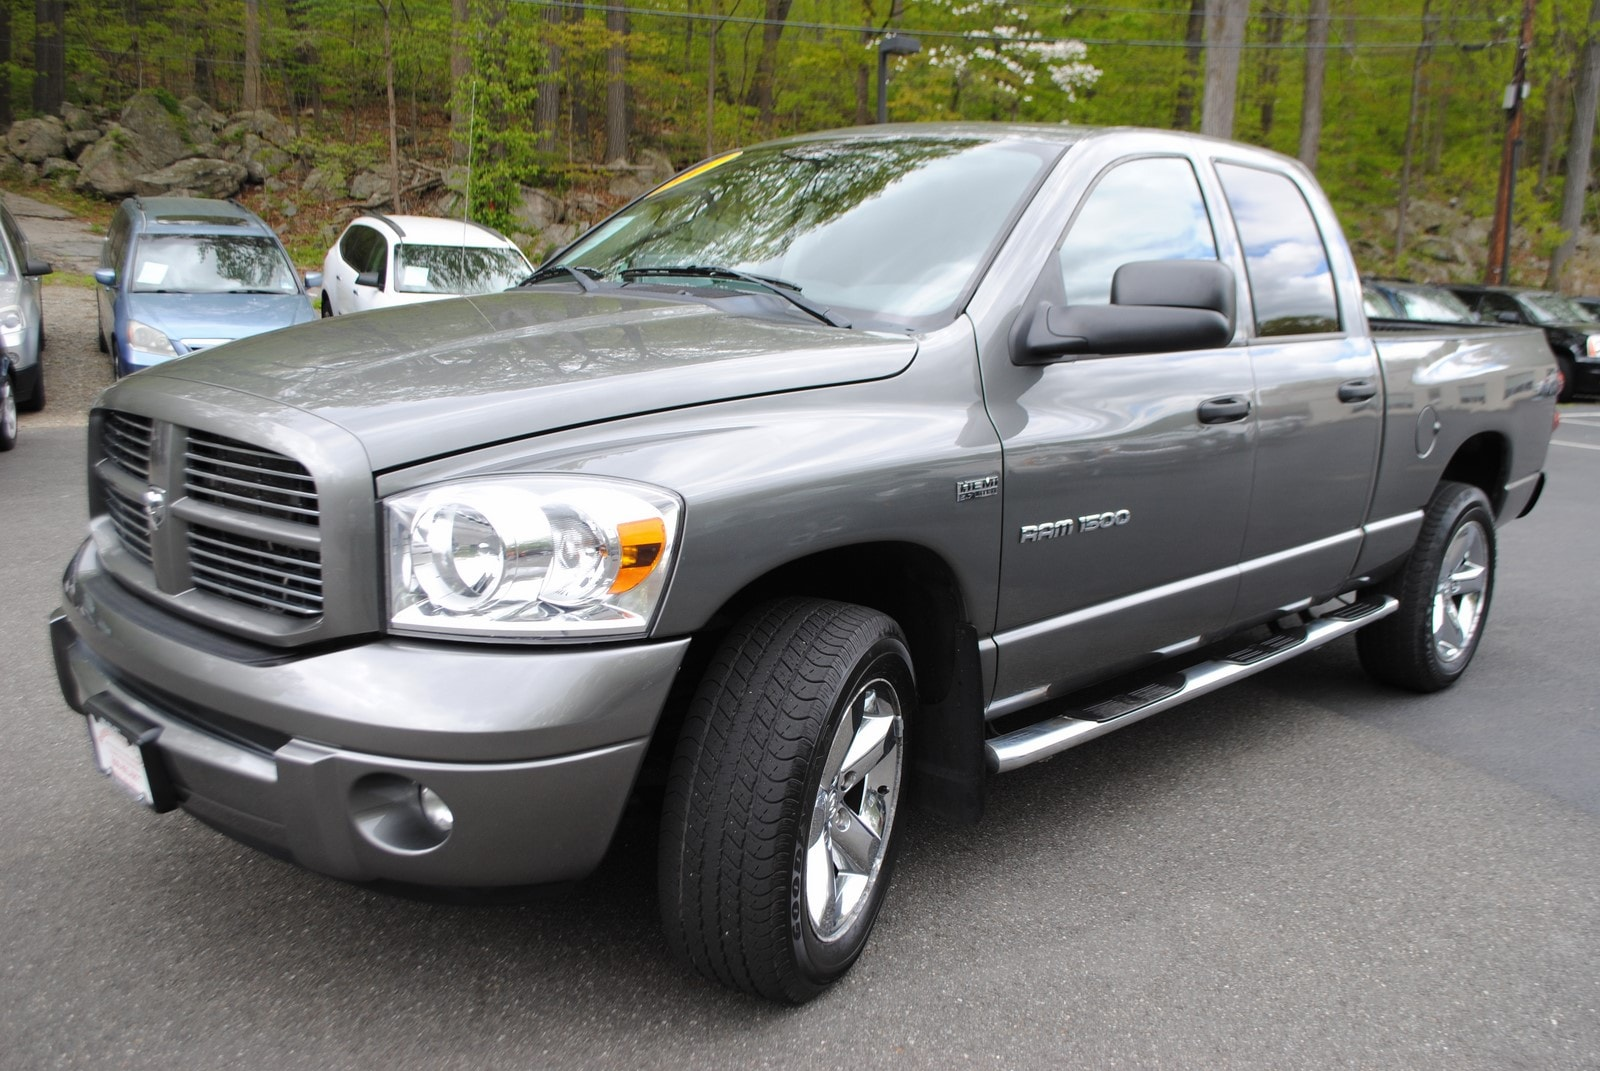 used 2007 dodge ram 1500 for sale west milford nj. Black Bedroom Furniture Sets. Home Design Ideas